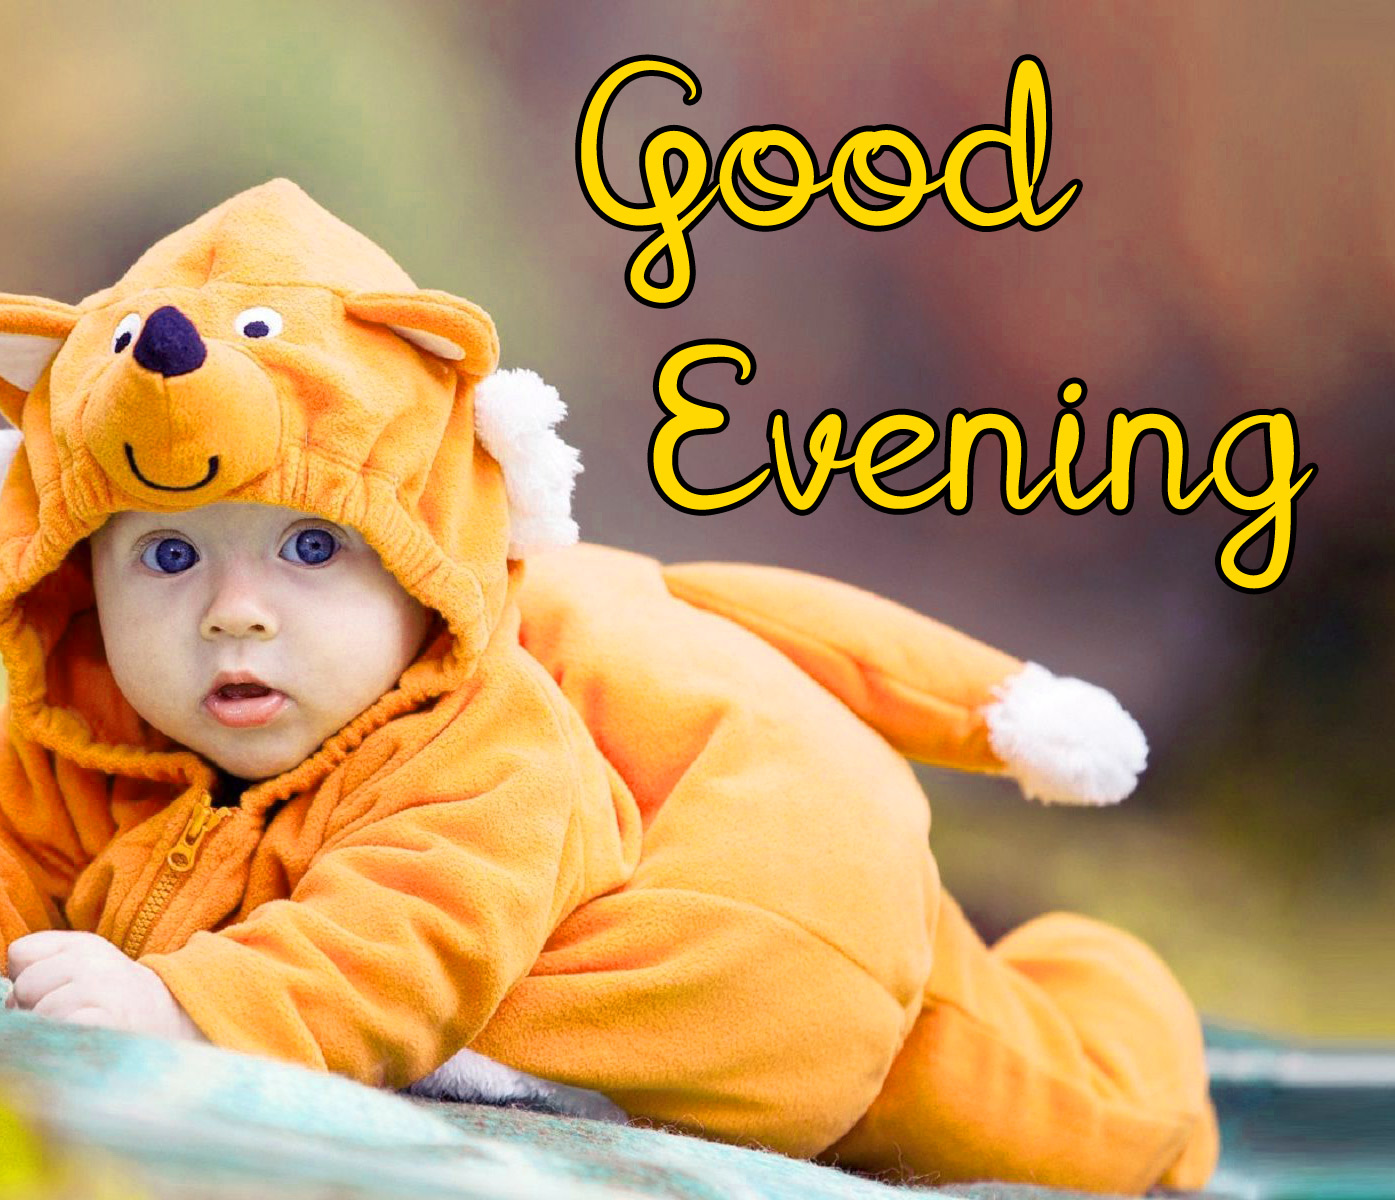 good evening images with cute baby 1